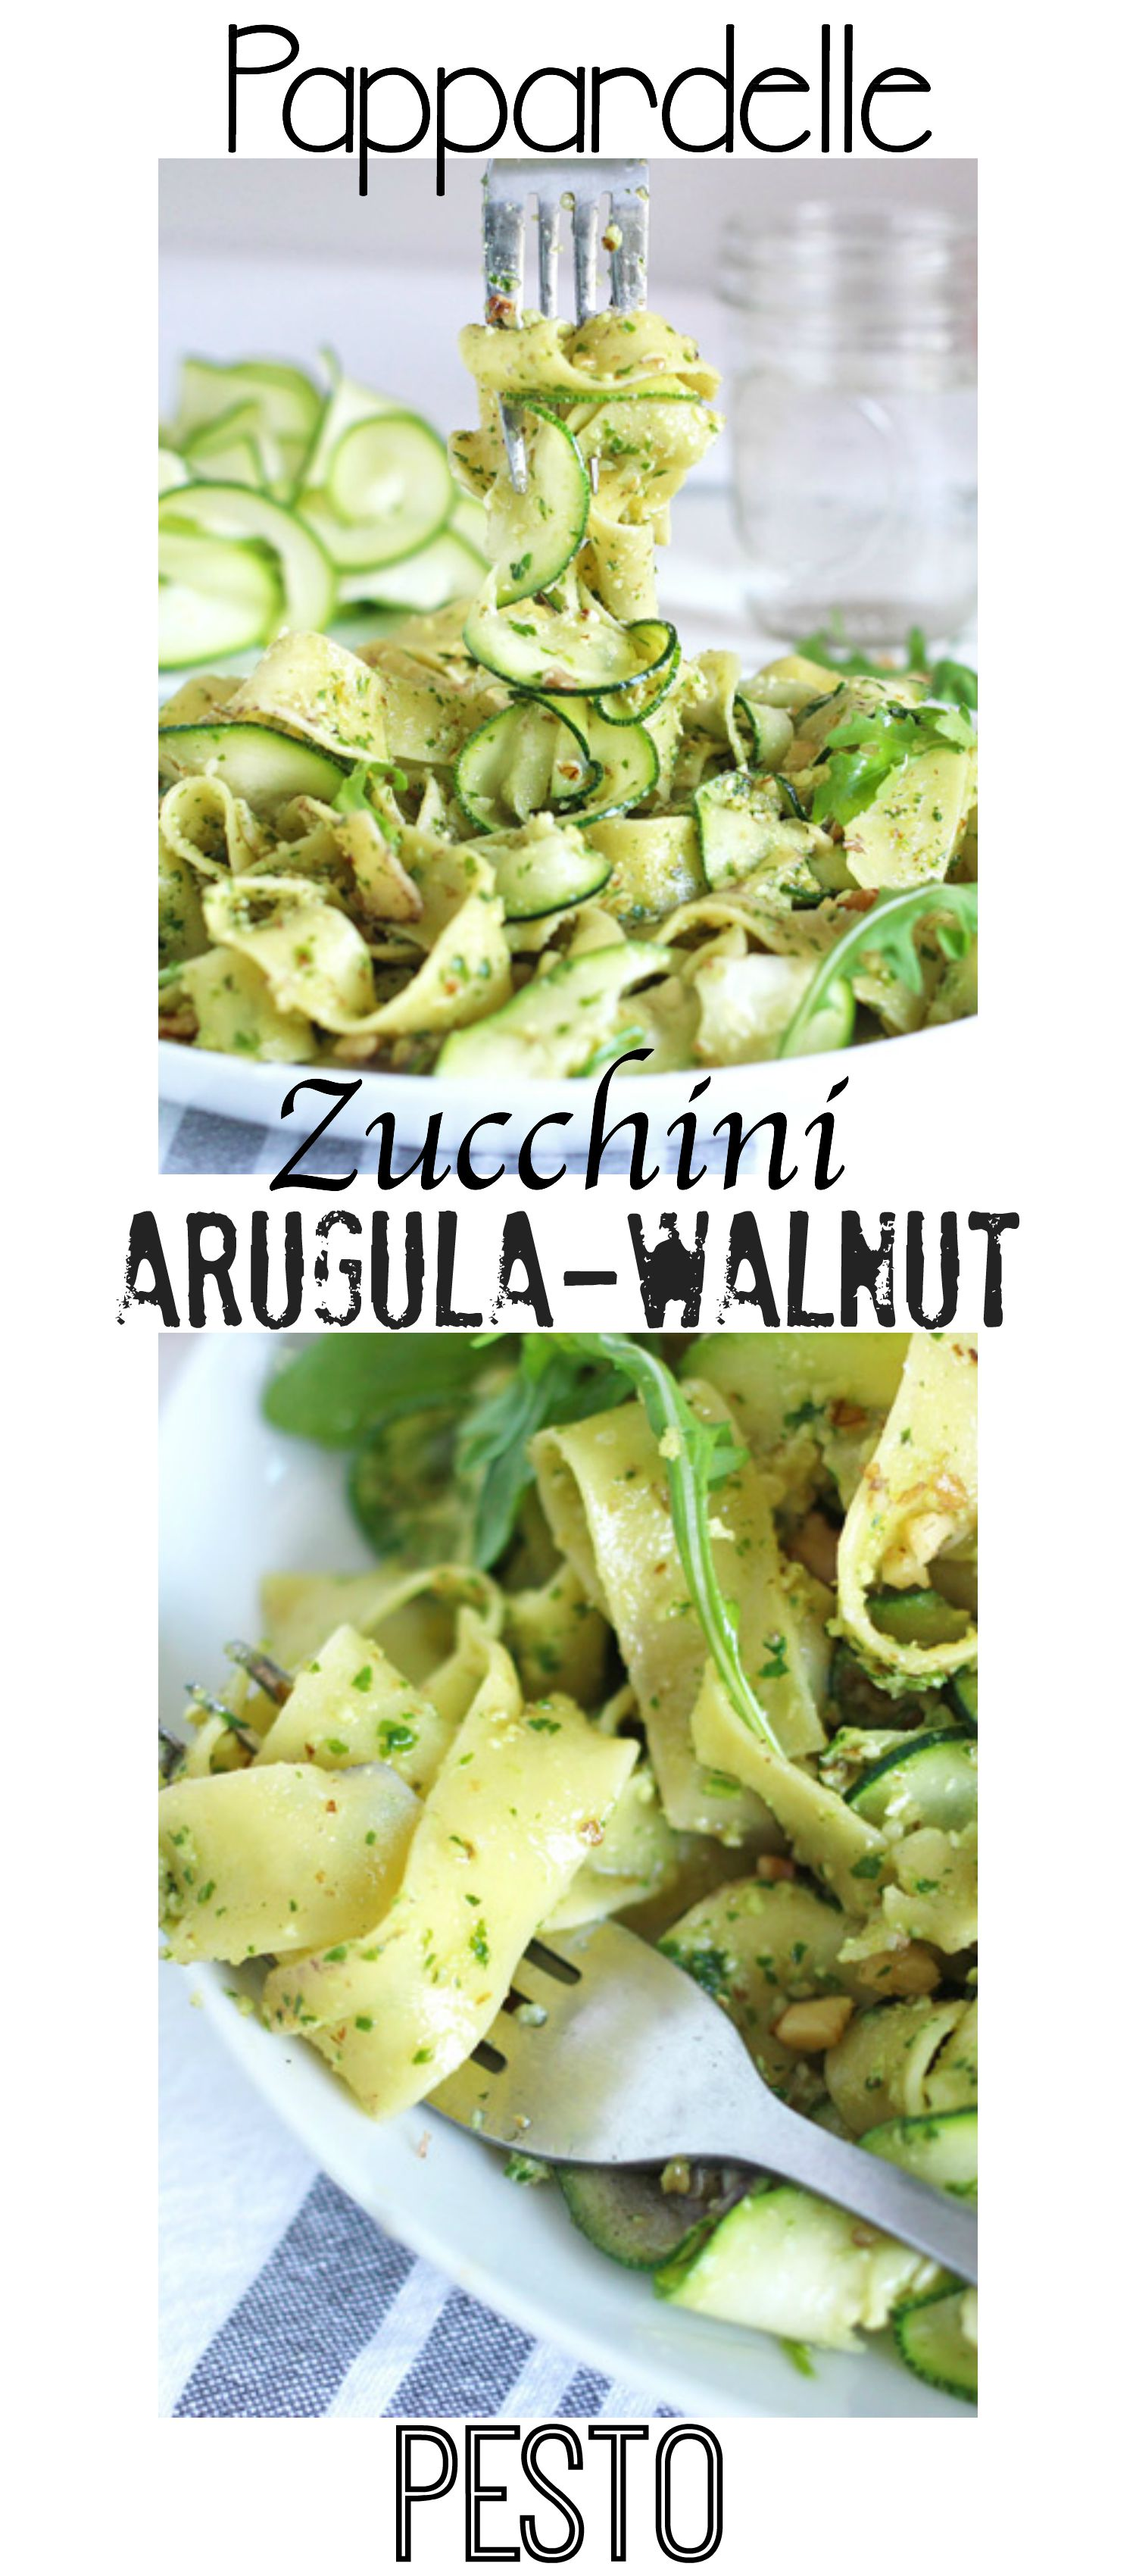 Pappardelle with Zucchini and Arugula Walnut Pesto. Vegan Pasta dish that is refreshing and healthy!